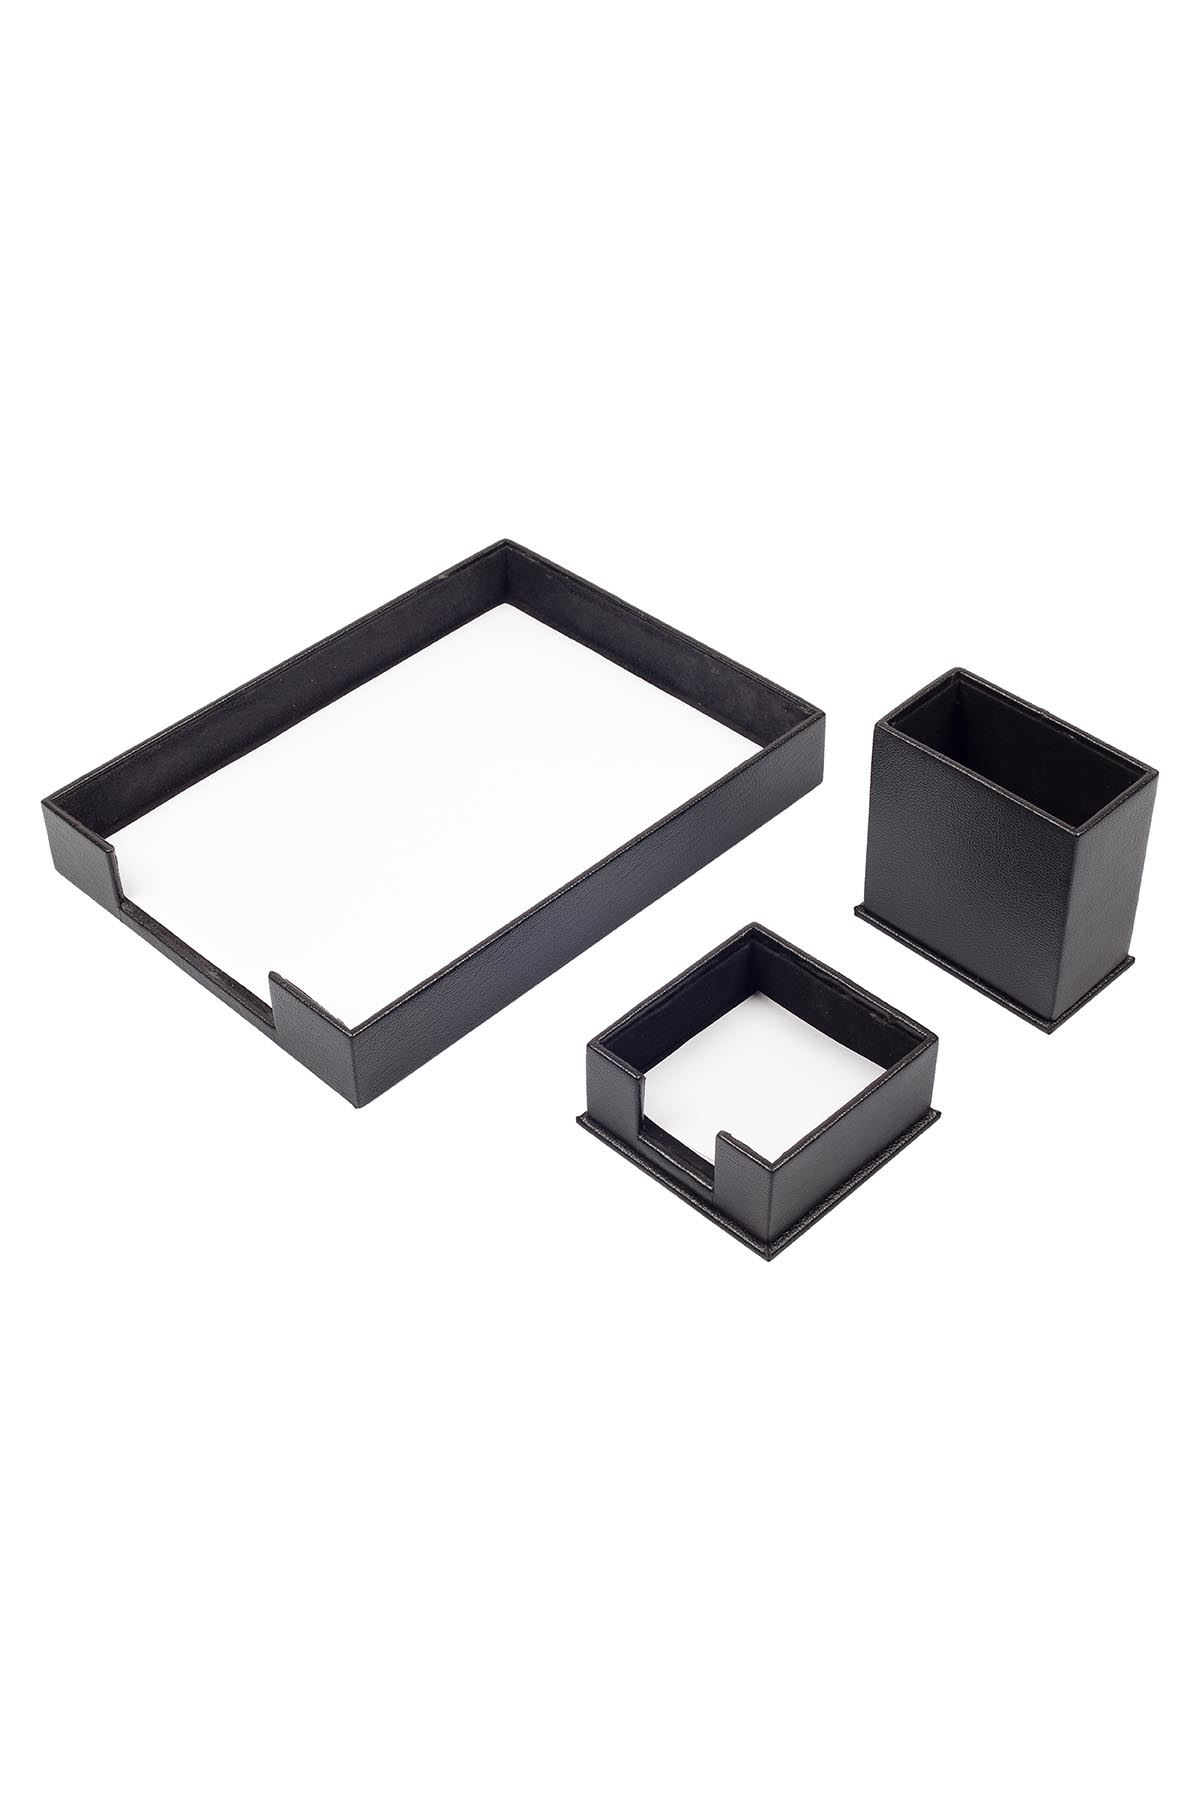 Document Tray With 2 Accessories Black| Desk Set Accessories | Desktop Accessories | Desk Accessories | Desk Organizers